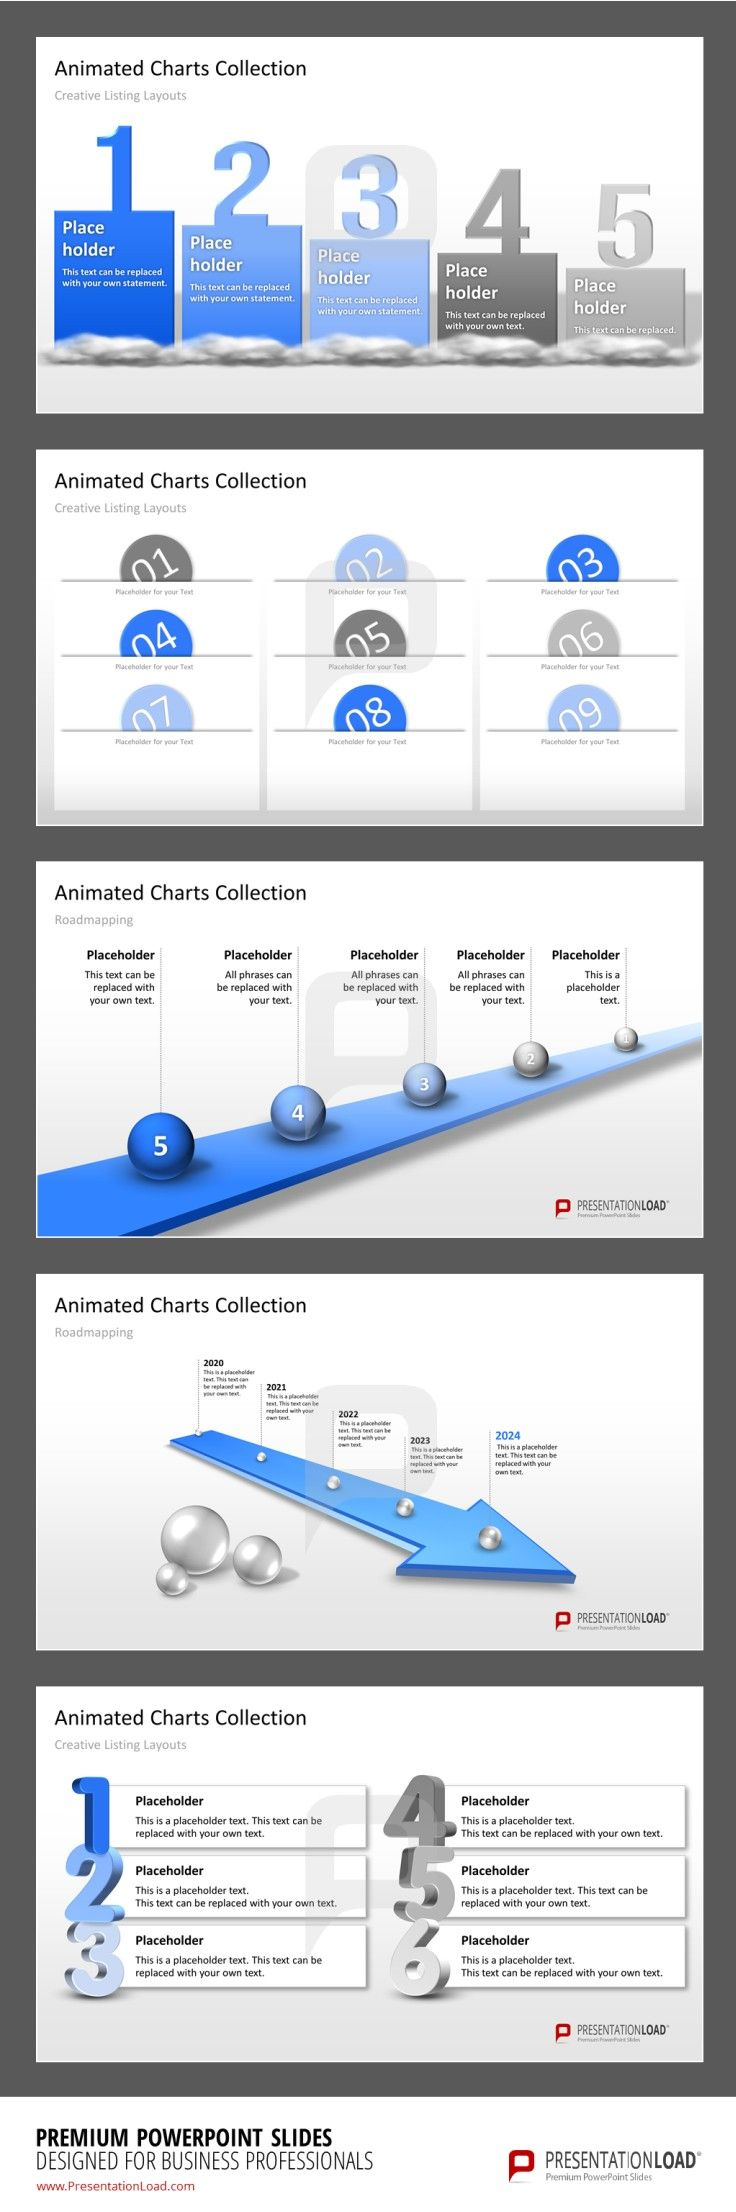 15 best animation powerpoint templates images on pinterest animated powerpoint templates the animated charts collection for powerpoint contains animated objects for creative listing layouts toneelgroepblik Image collections